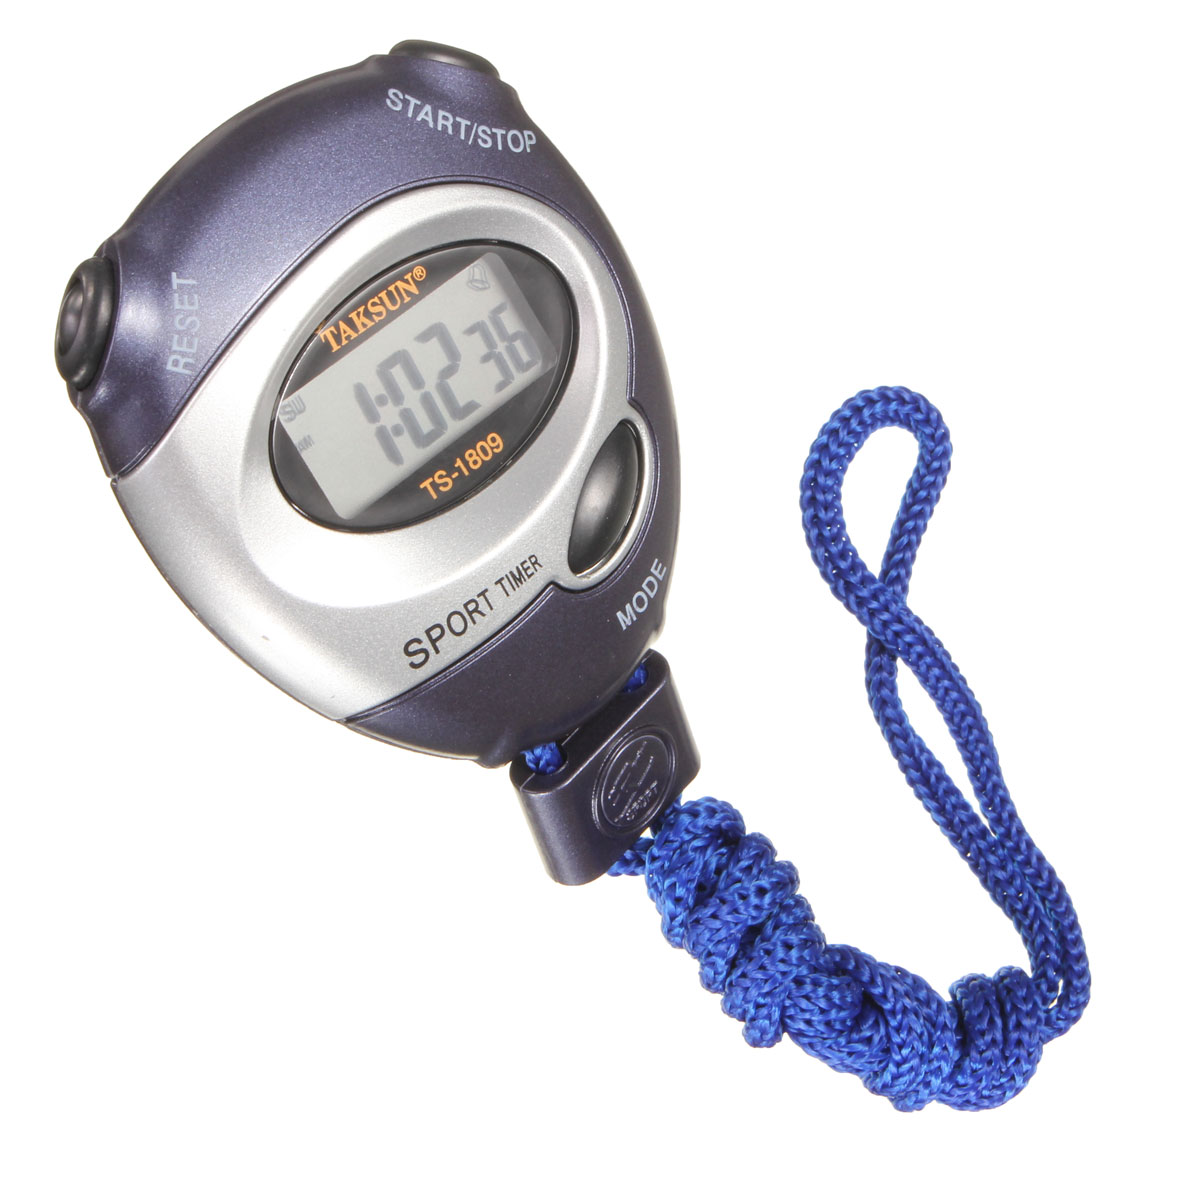 Digital Handheld Sports Stopwatch Stop Watch Time Clock Alarm Counter Timer Blue